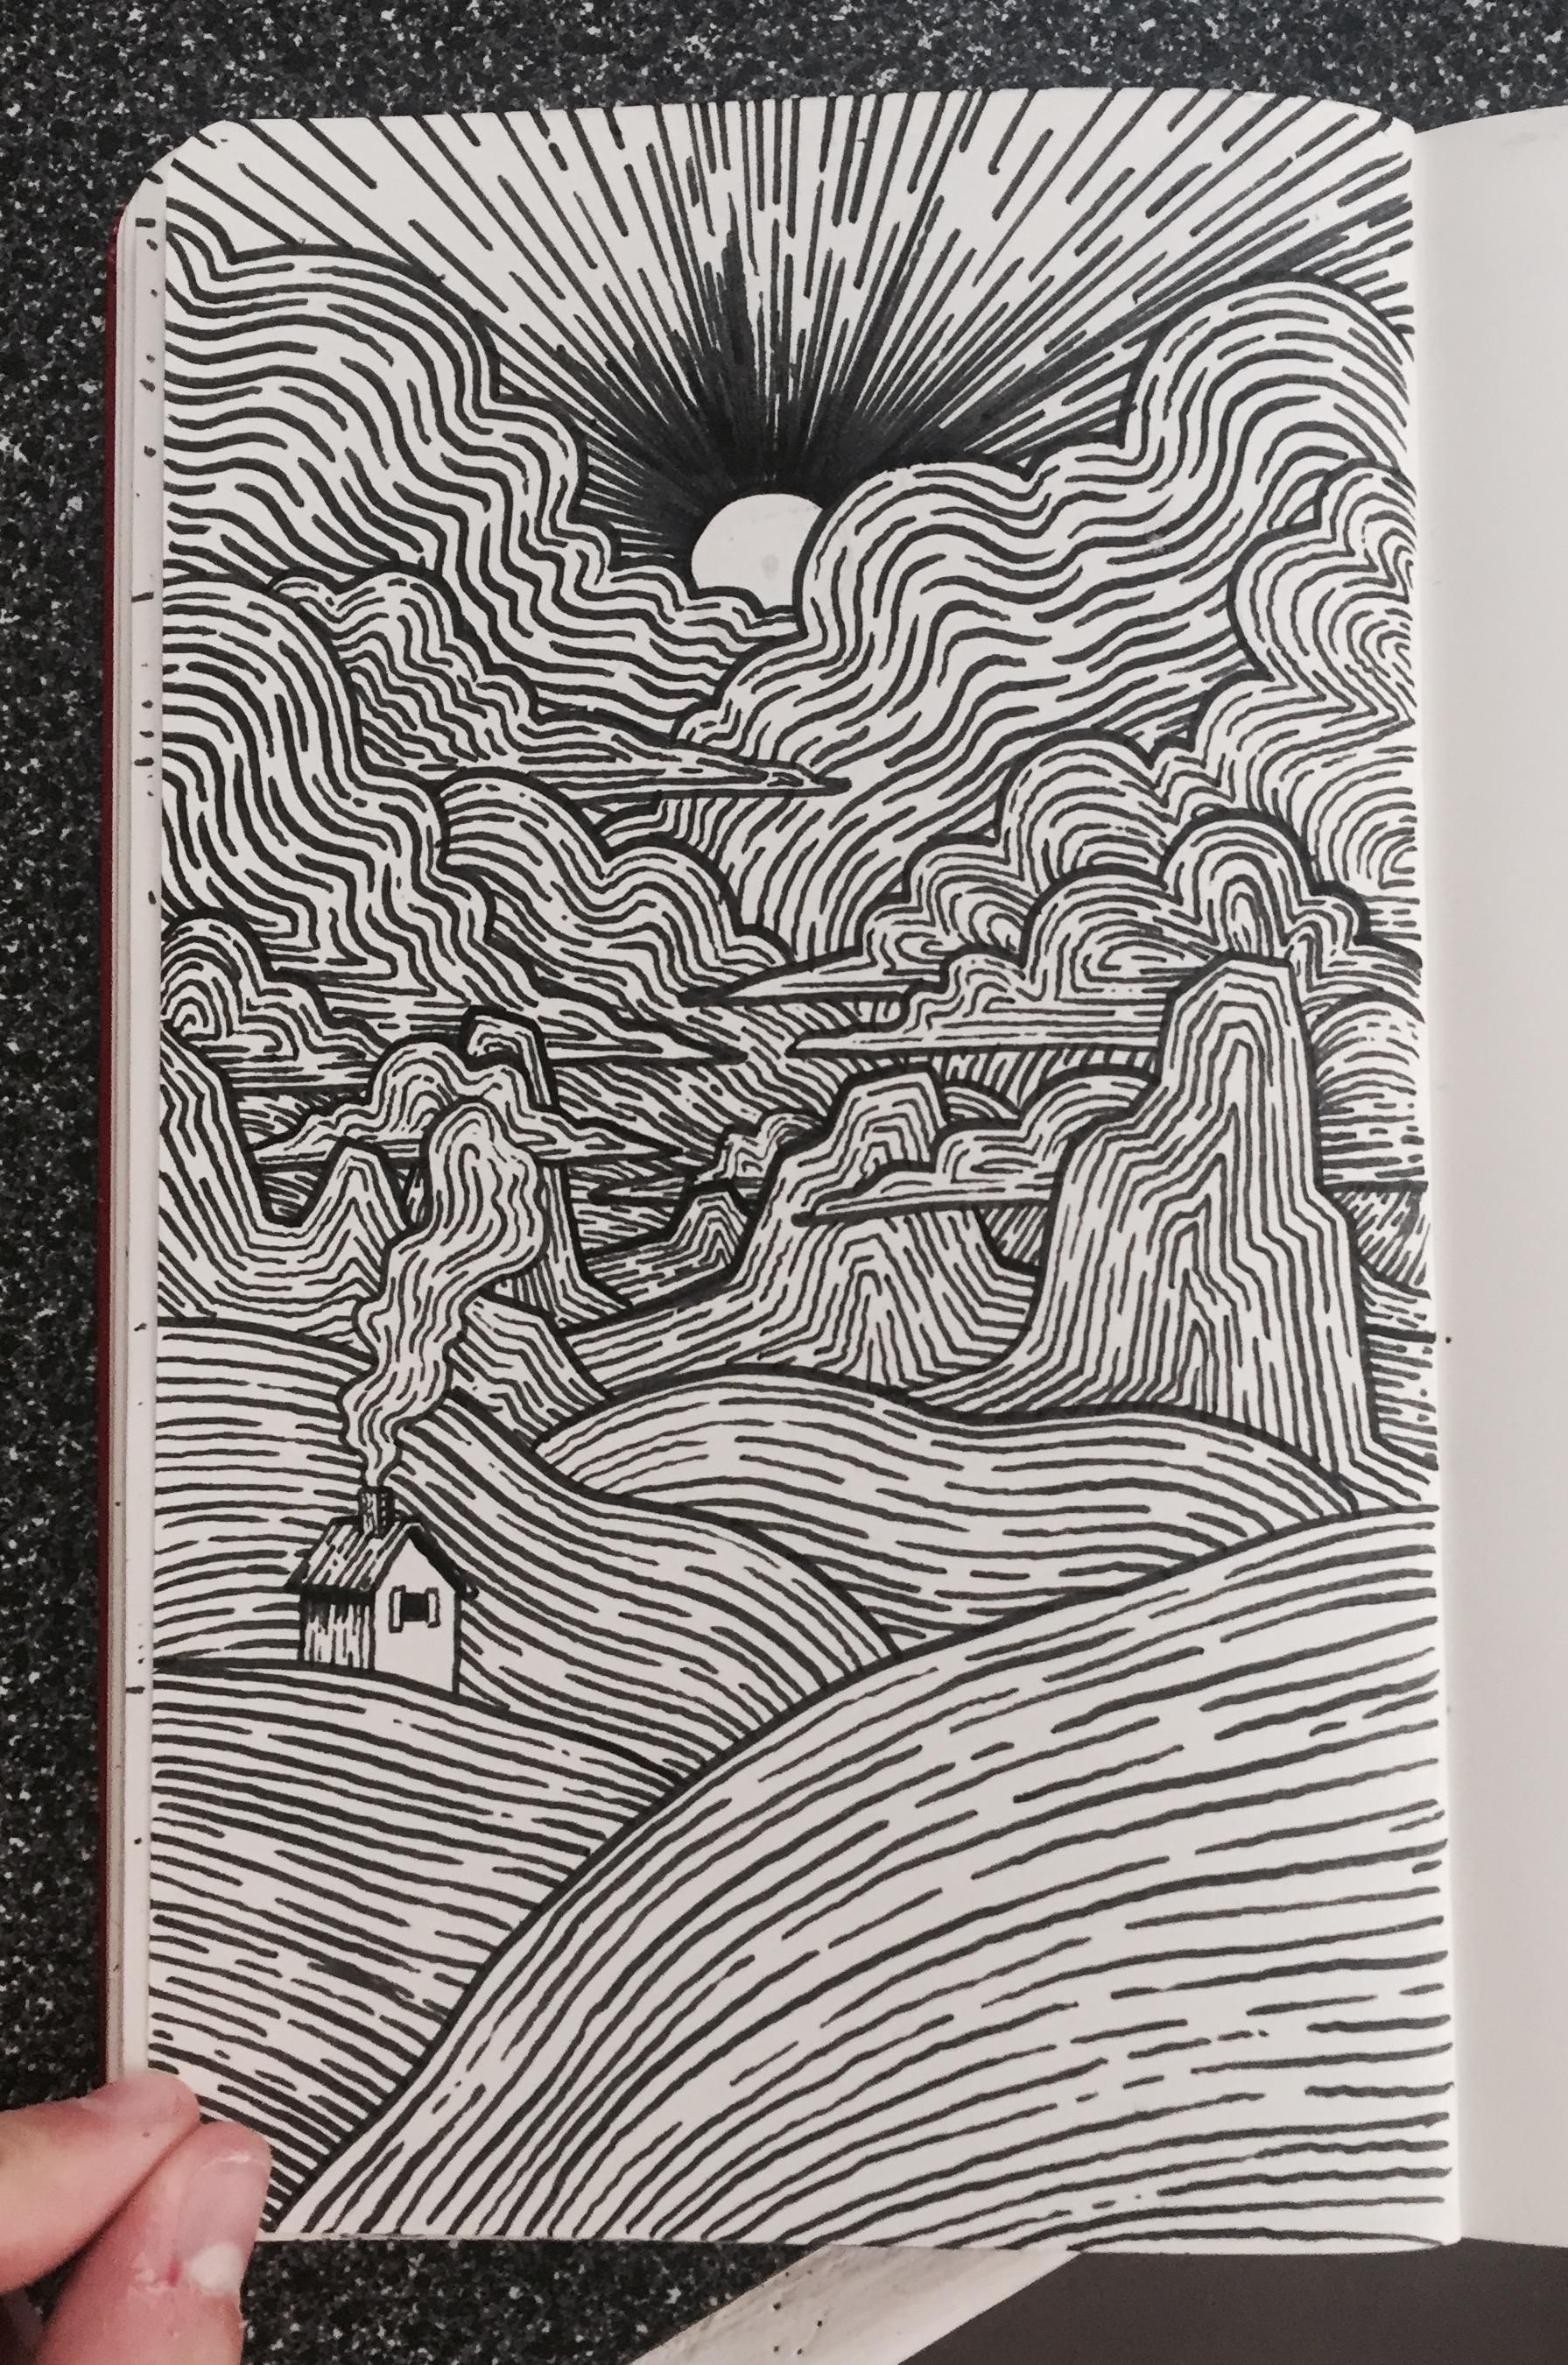 8564 Points And 76 Comments So Far On Reddit Ink Pen Art Pen Art